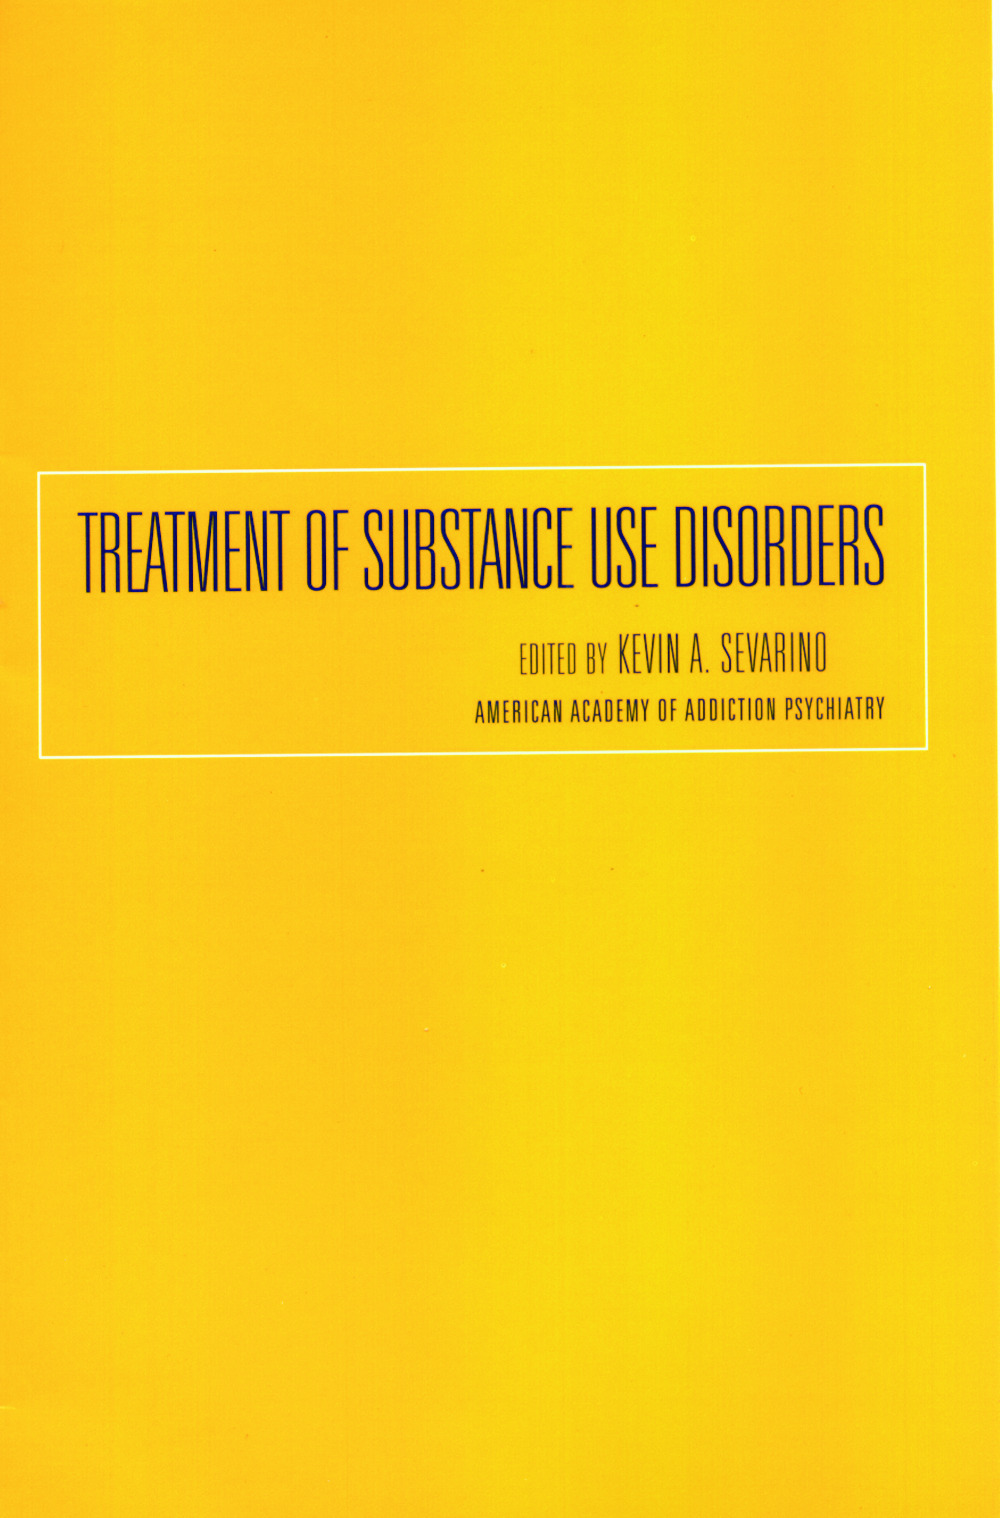 Treatment of Substance Use Disorders